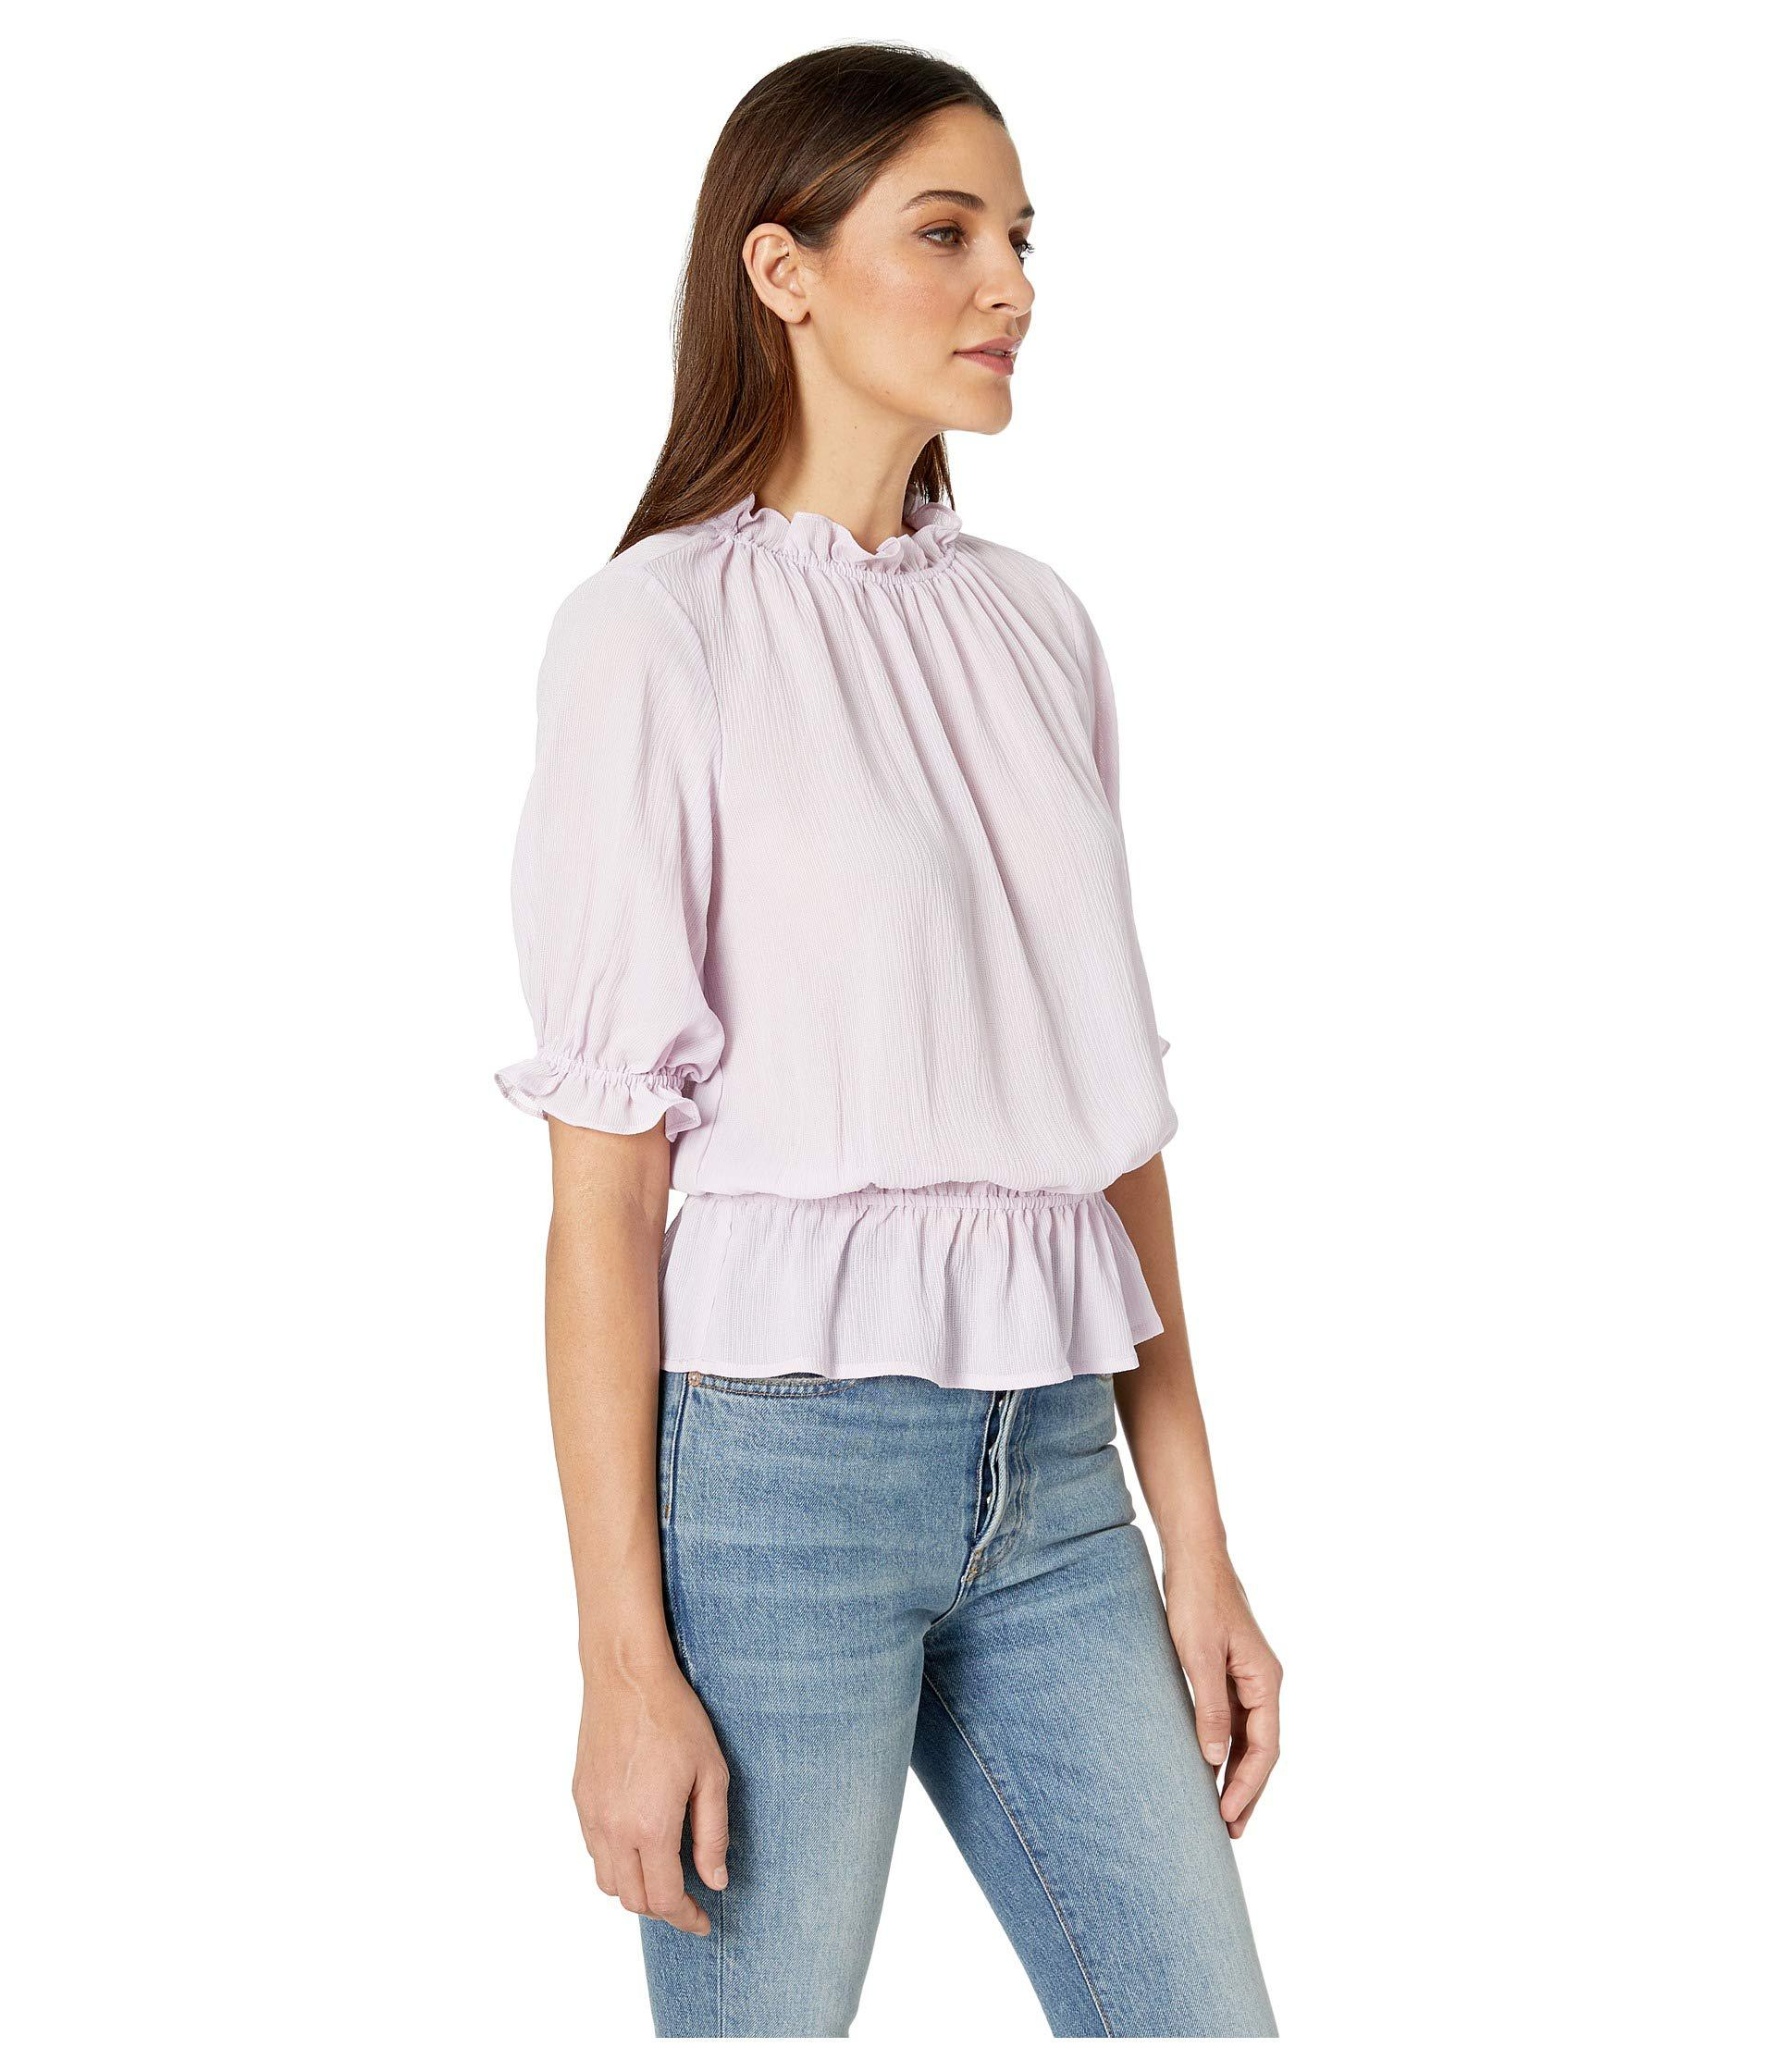 9f9a5ed0b18a2a 1.STATE - White Short Sleeve Mock Neck Micro Check Ruffle Blouse (orchid  Rose. View fullscreen